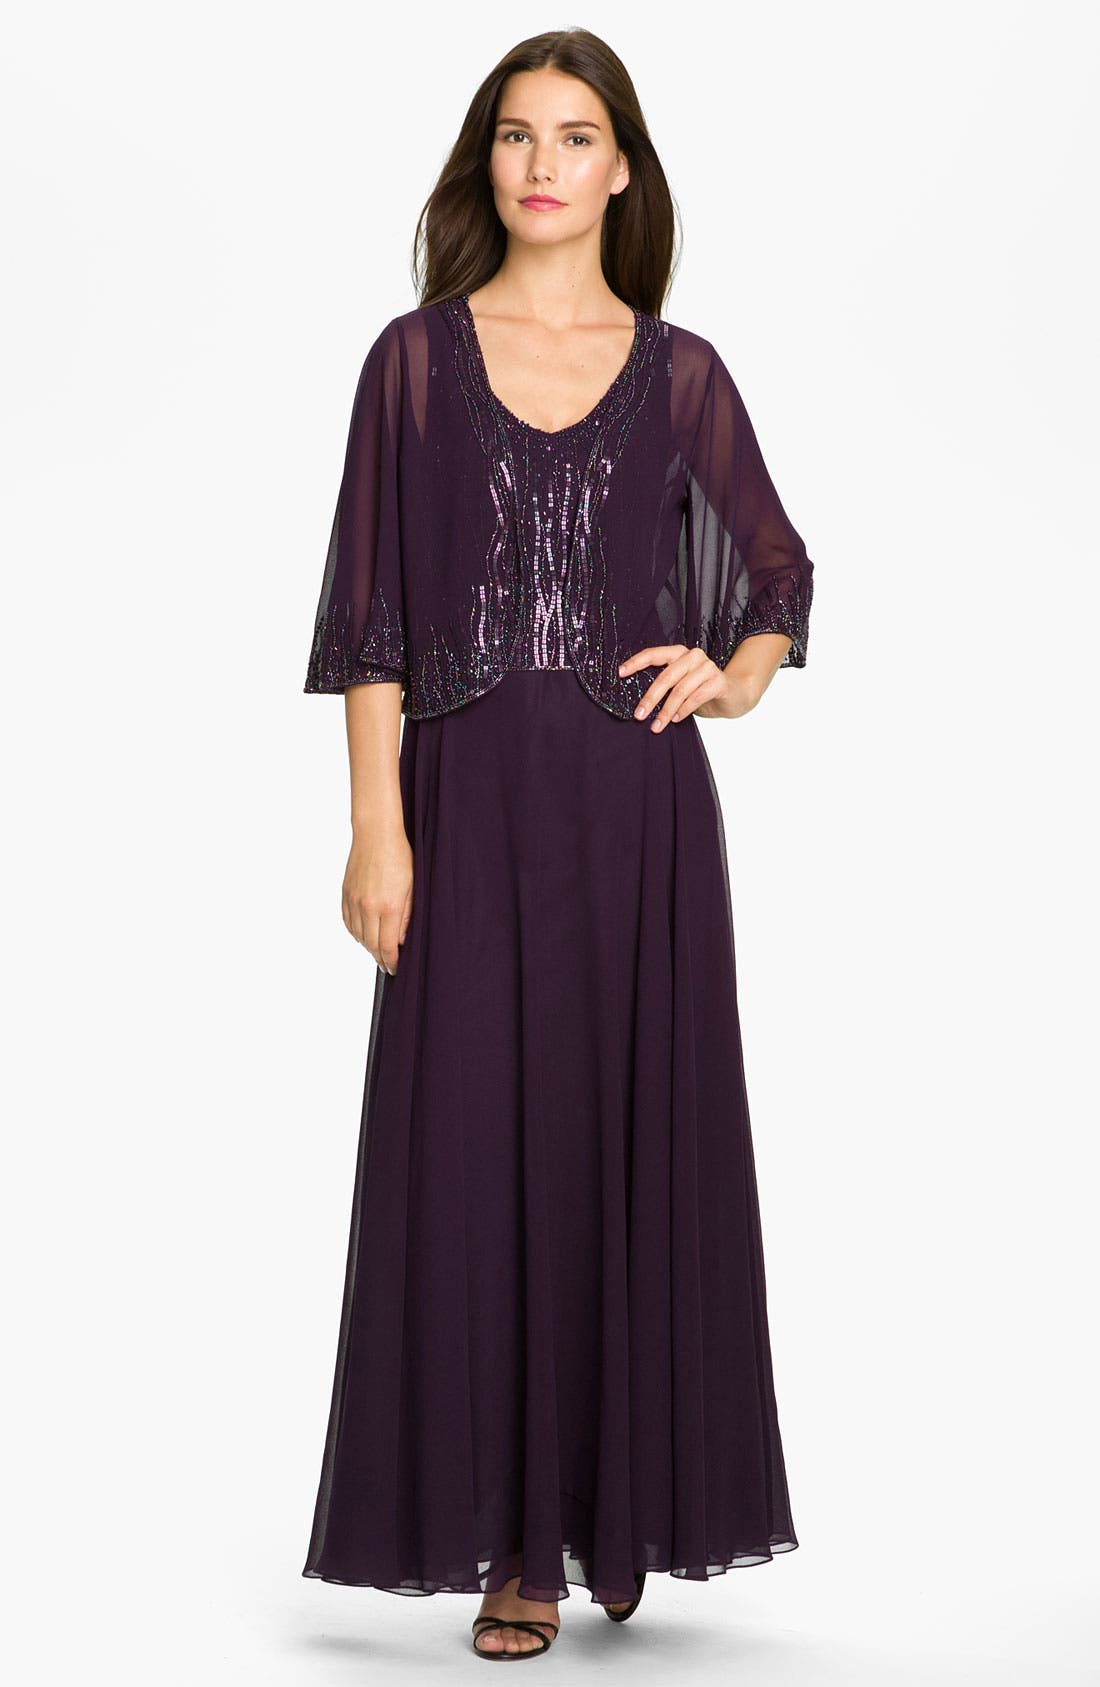 Main Image - J Kara Sequin Bodice Chiffon Dress & Sheer Embellished Jacket